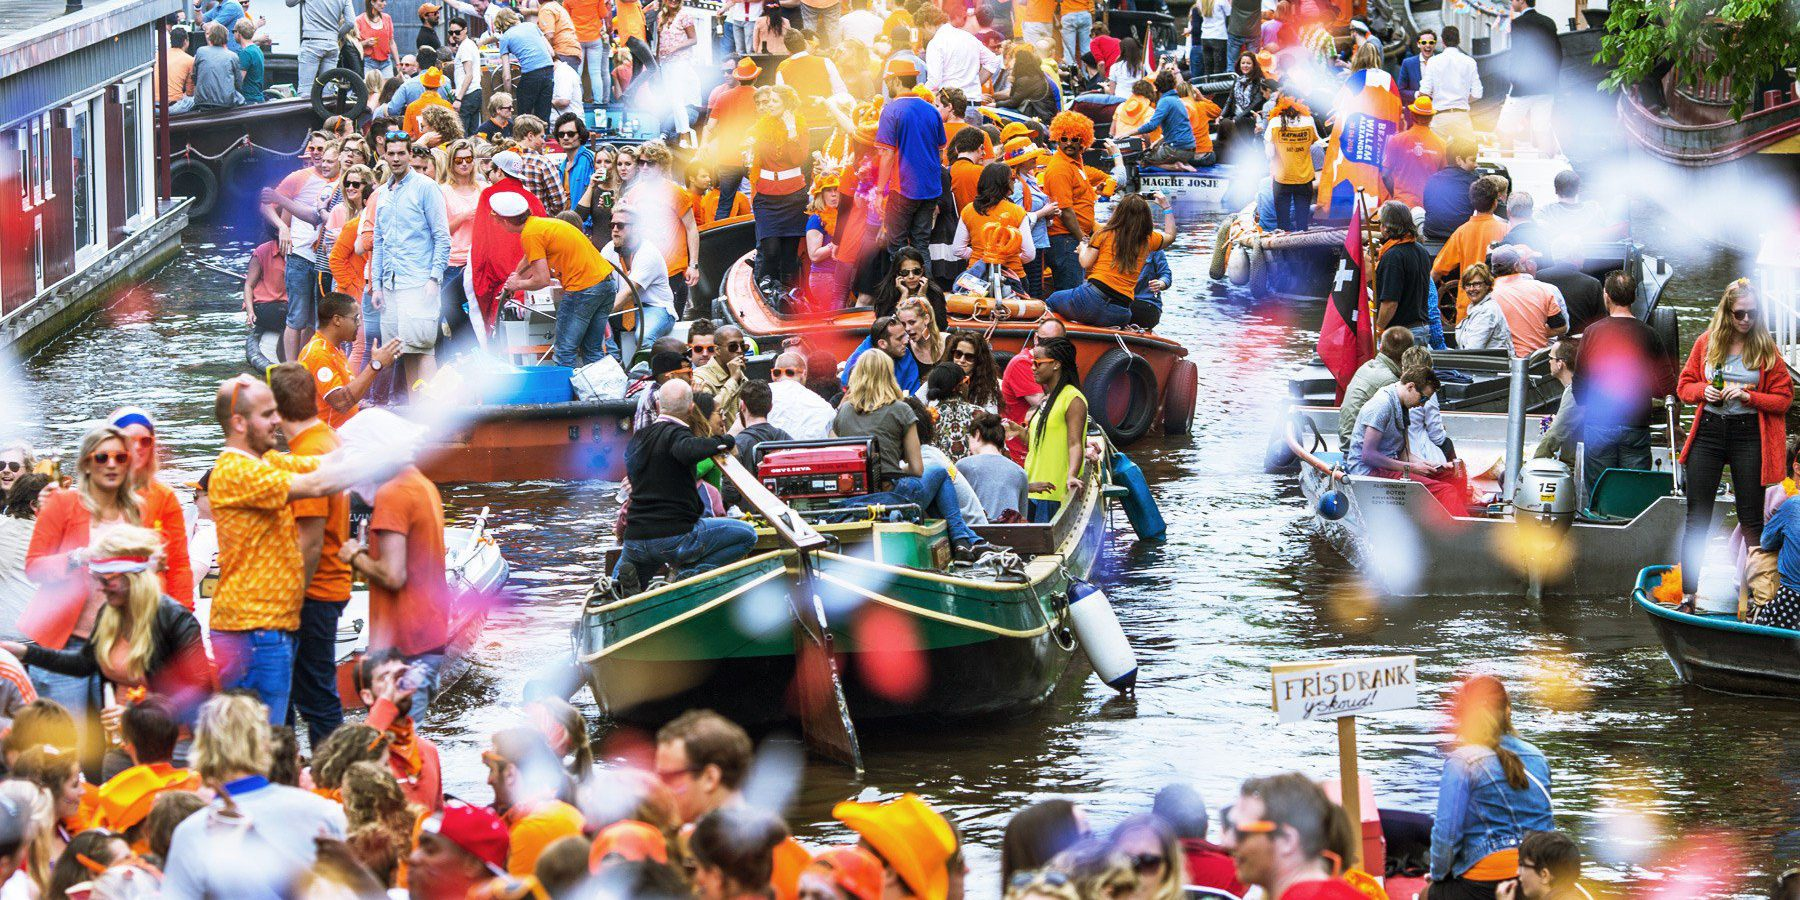 Parties on the canal for Kings Day in Amsterdam